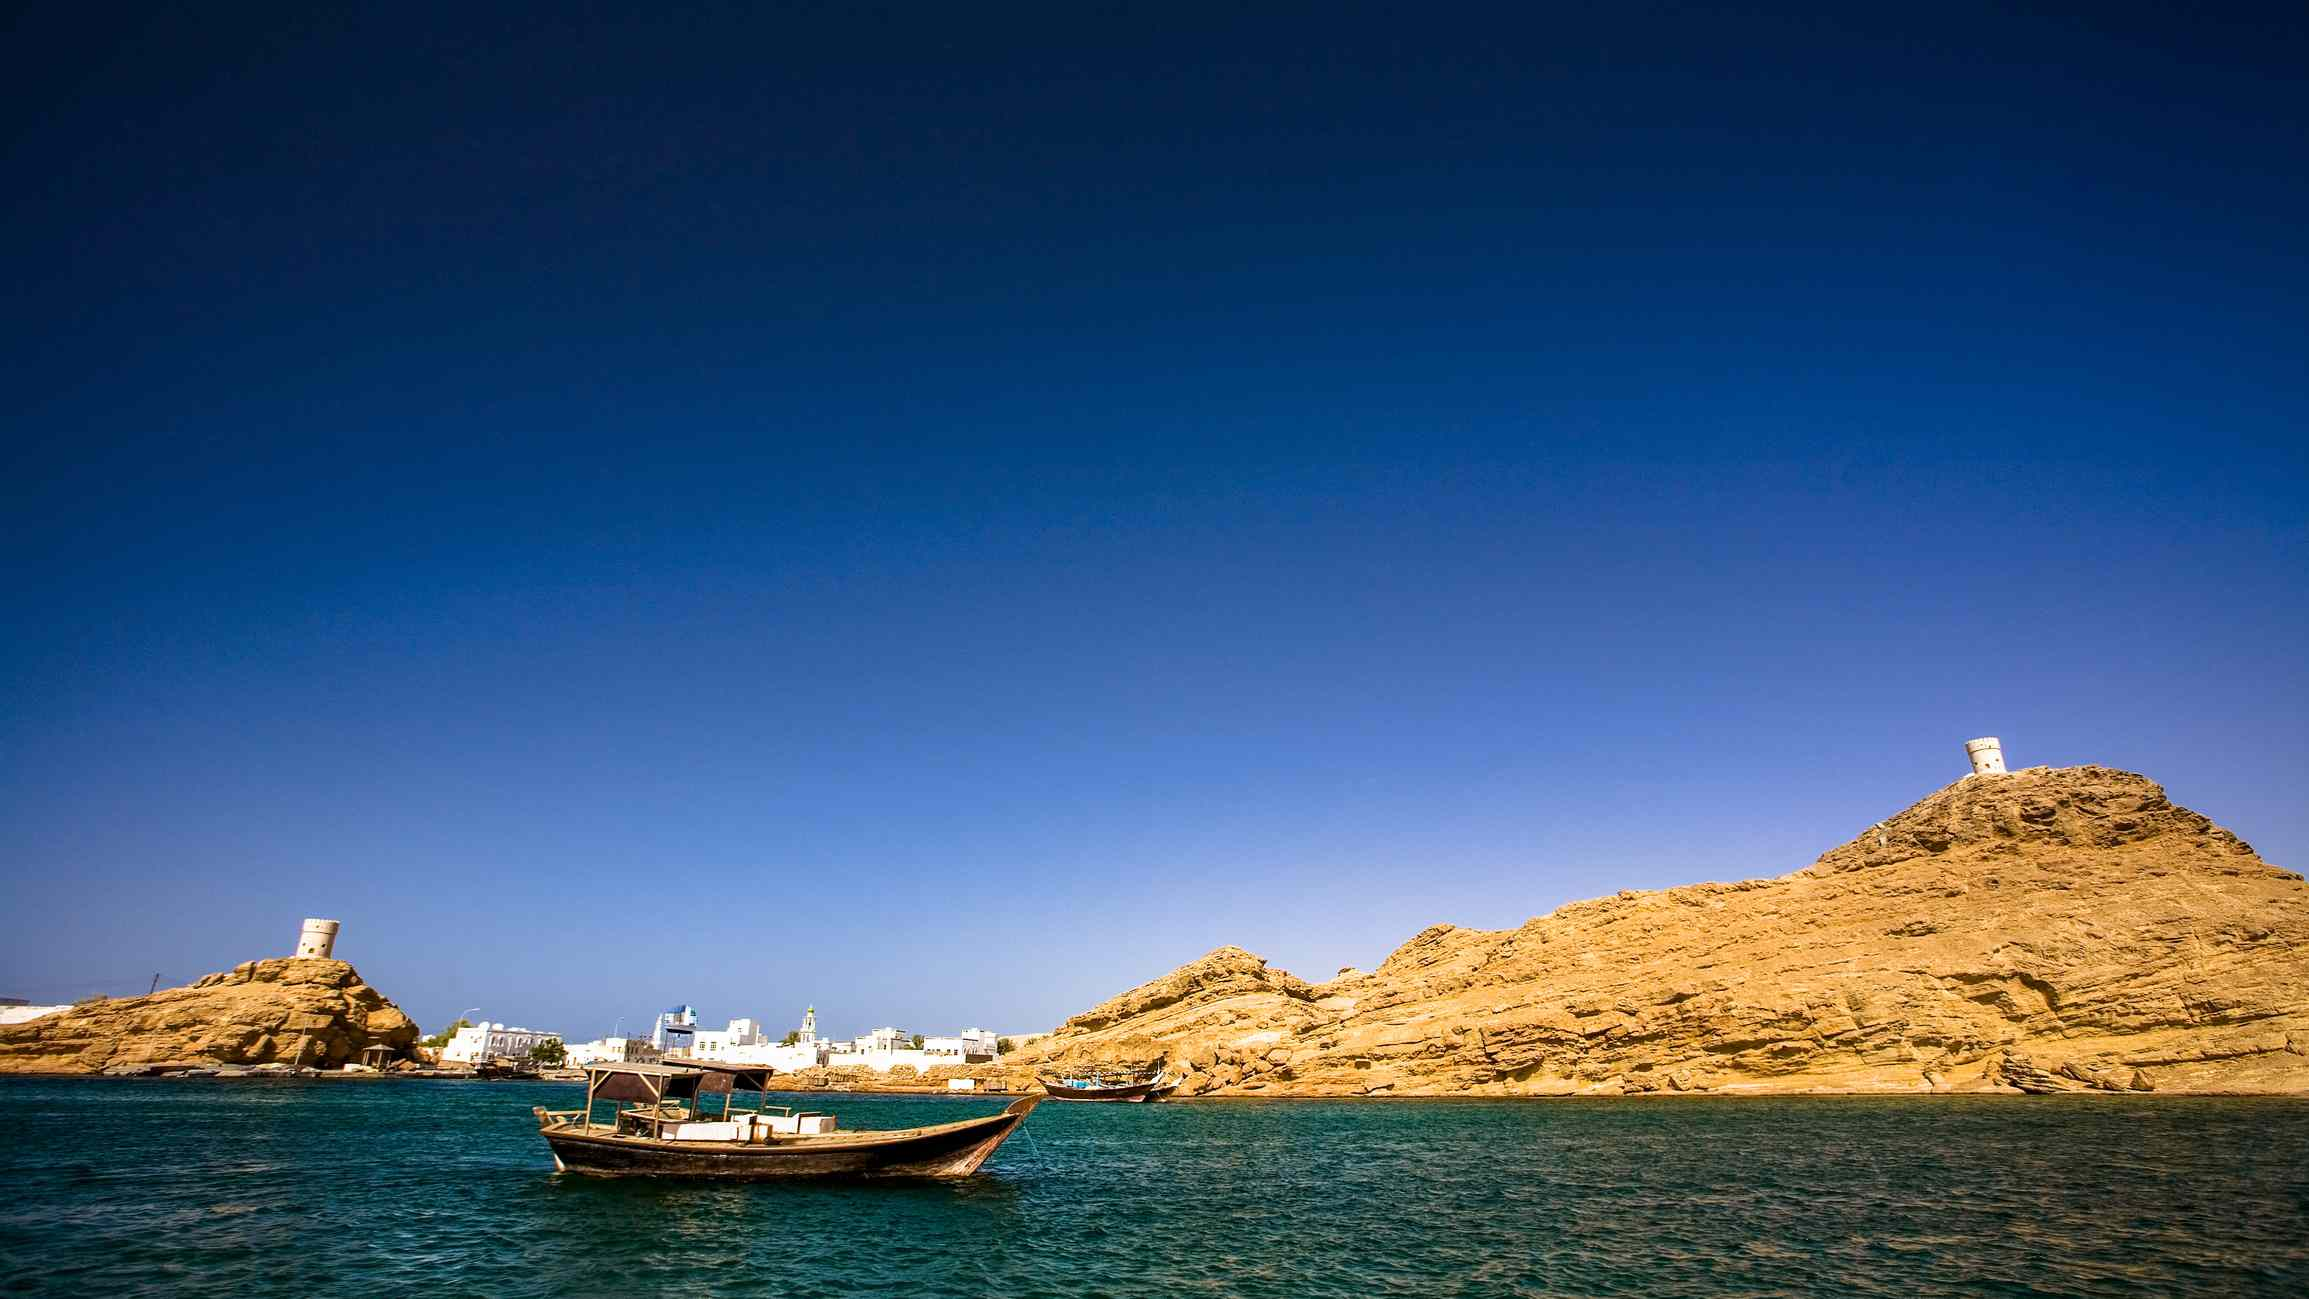 Wooden boat in the water at Sur, Oman